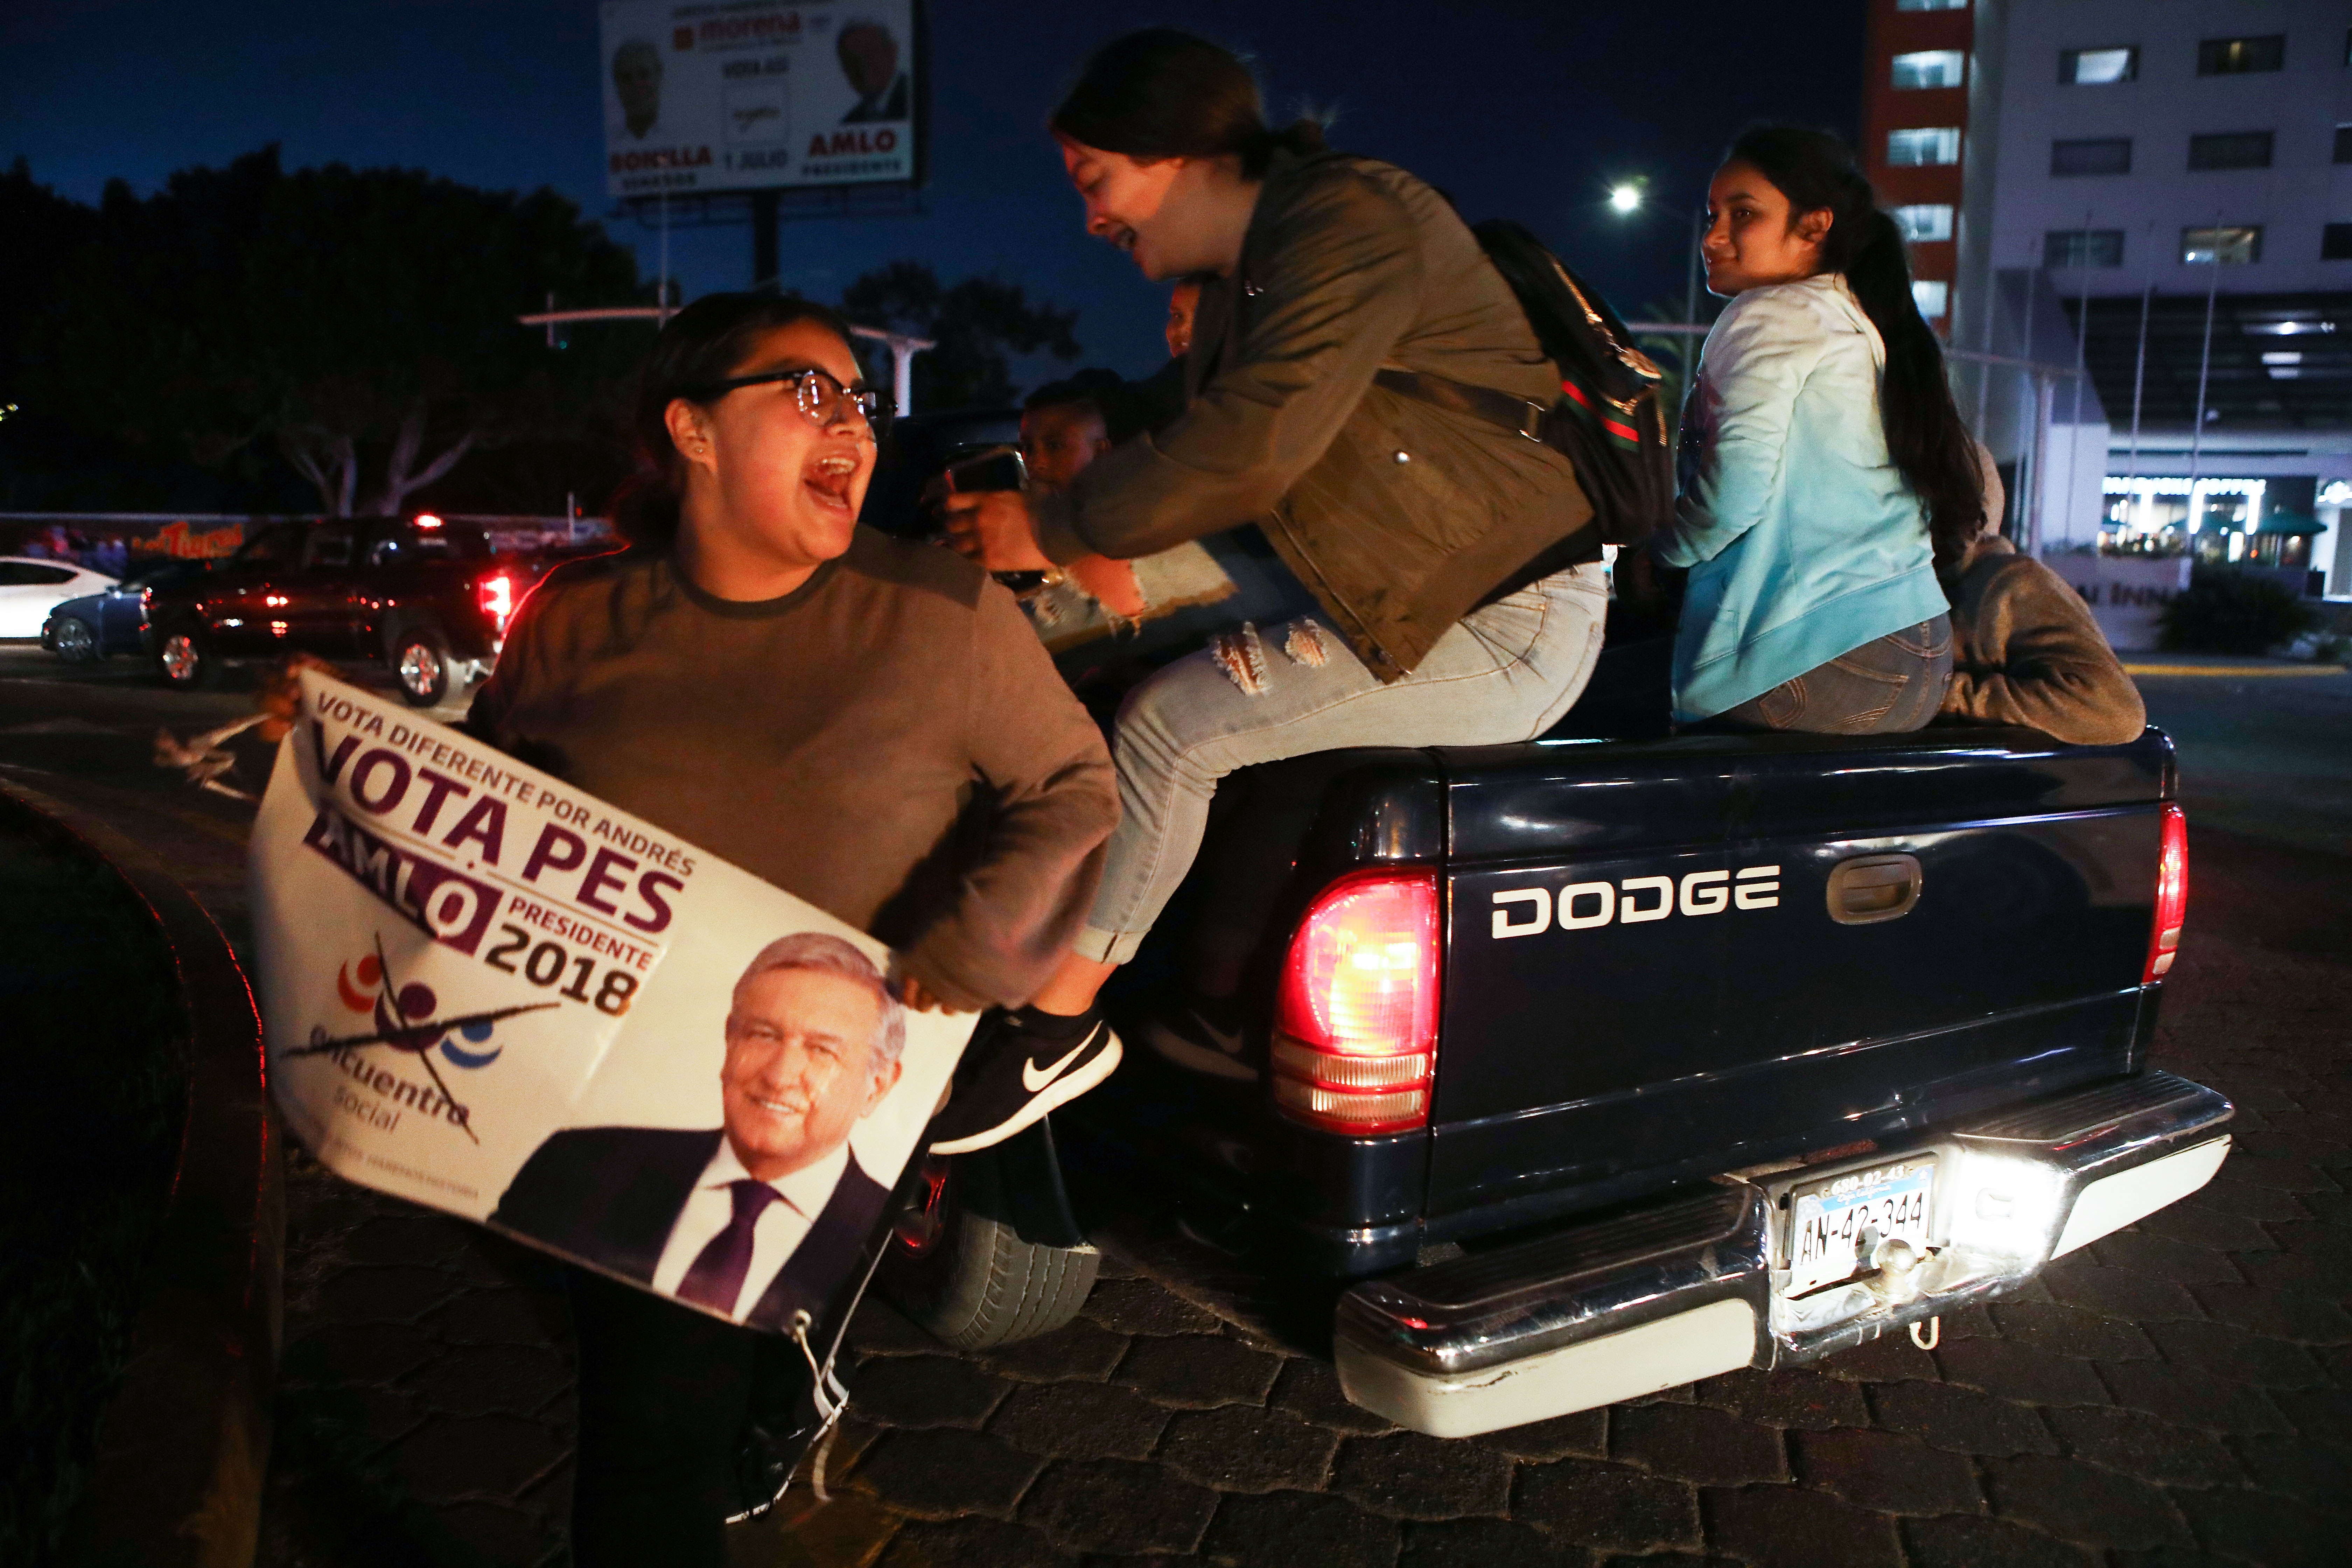 Lopez Obrador supporters on election night